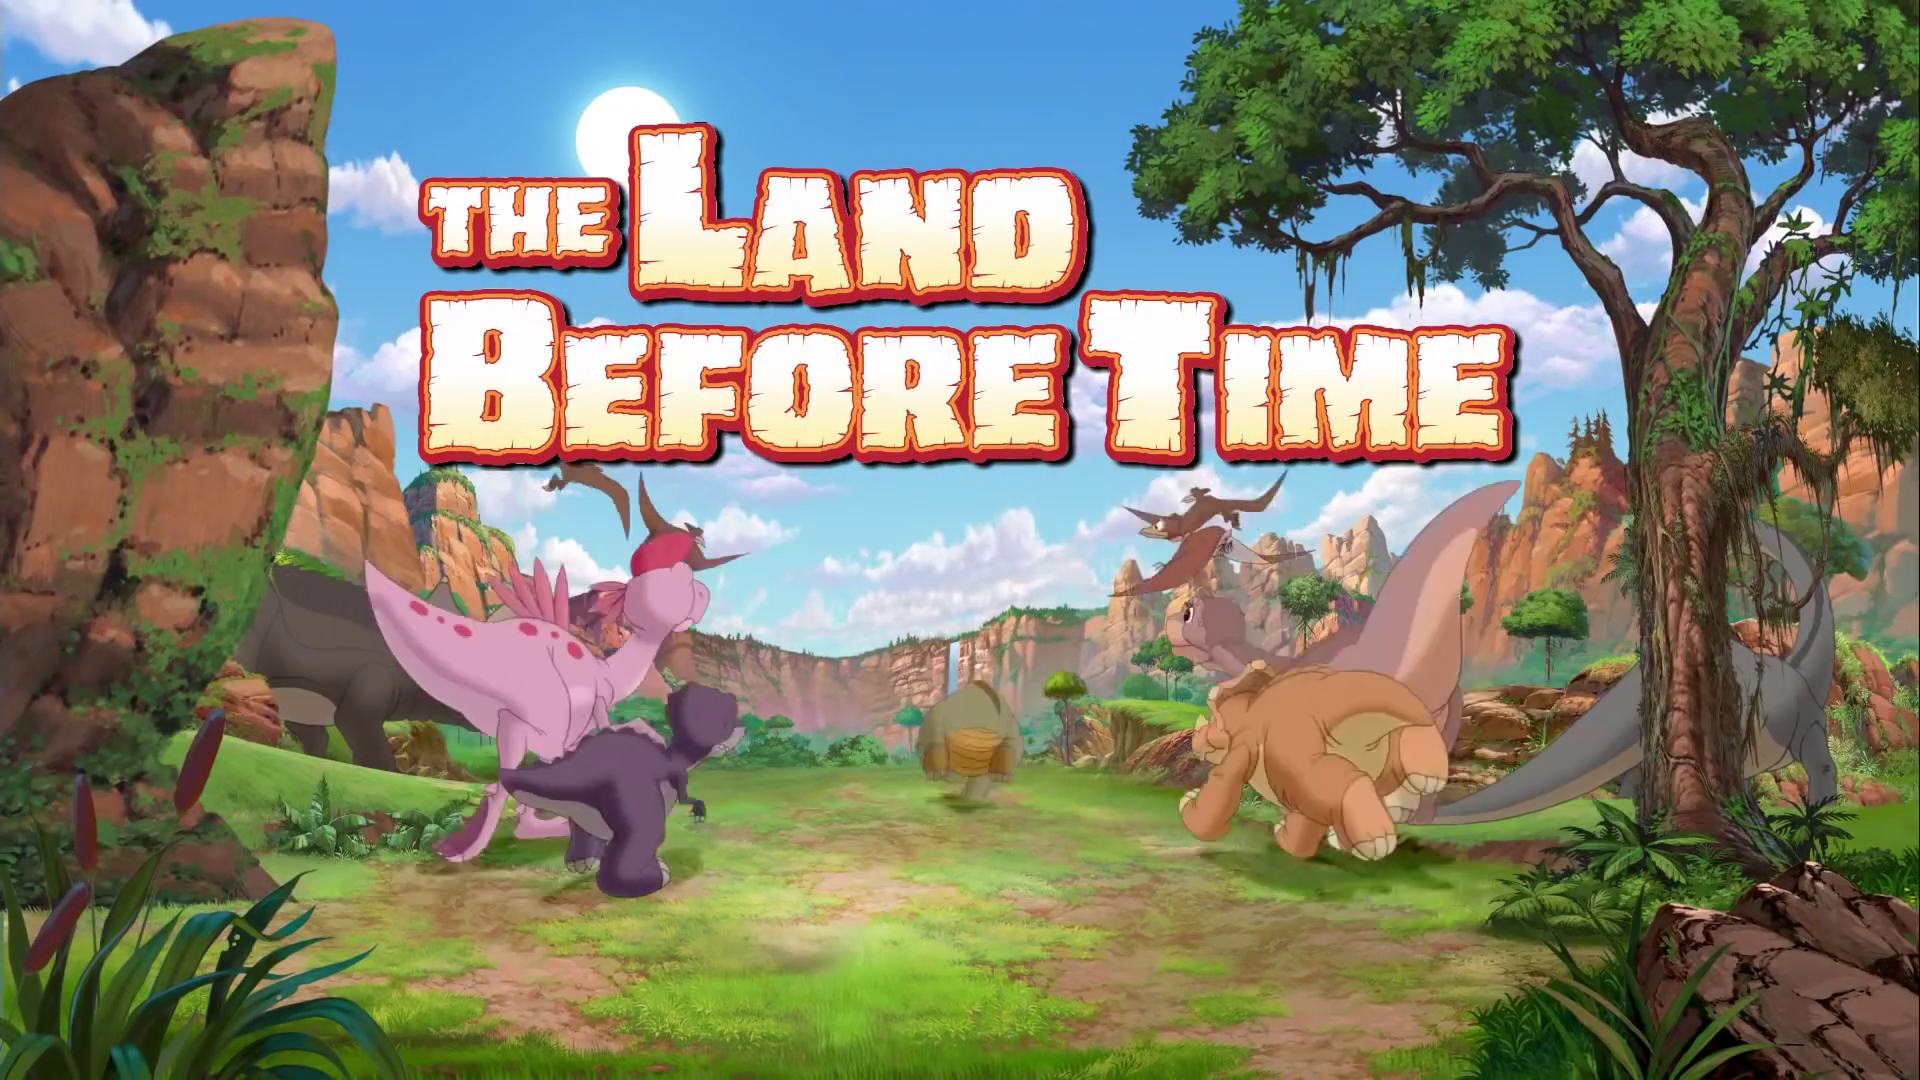 The Land Before Time Tv Series Land Before Time Wiki Fandom